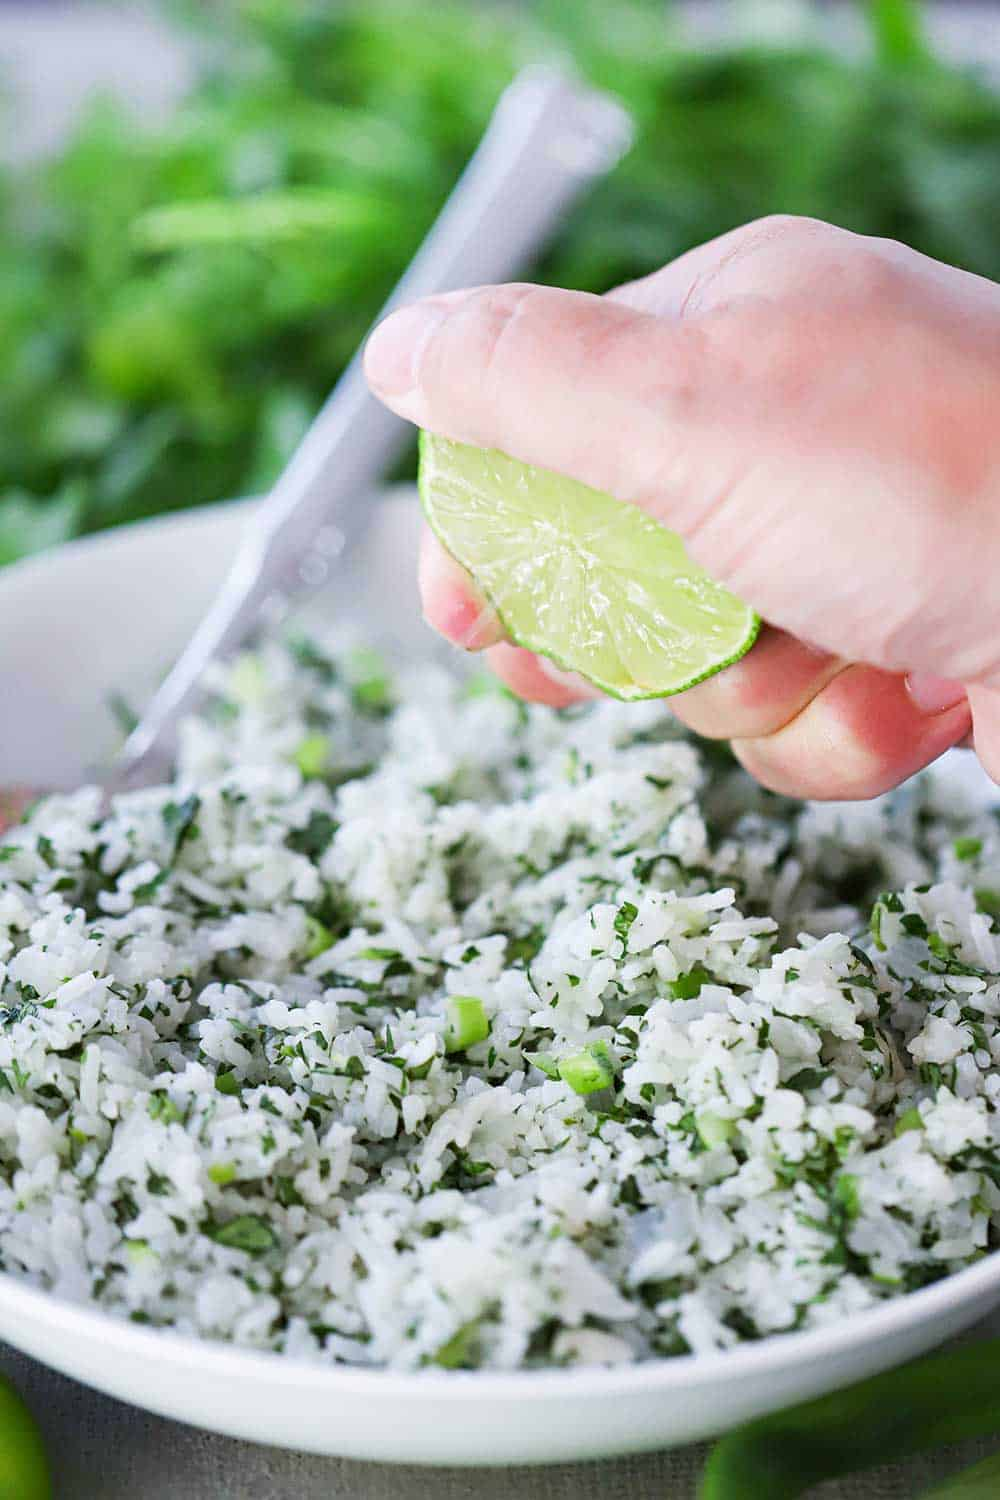 A hand squeezing a lime wedge over a white bowl filled with cilantro lime rice with a spoon in it, sitting next to fresh cilantro.